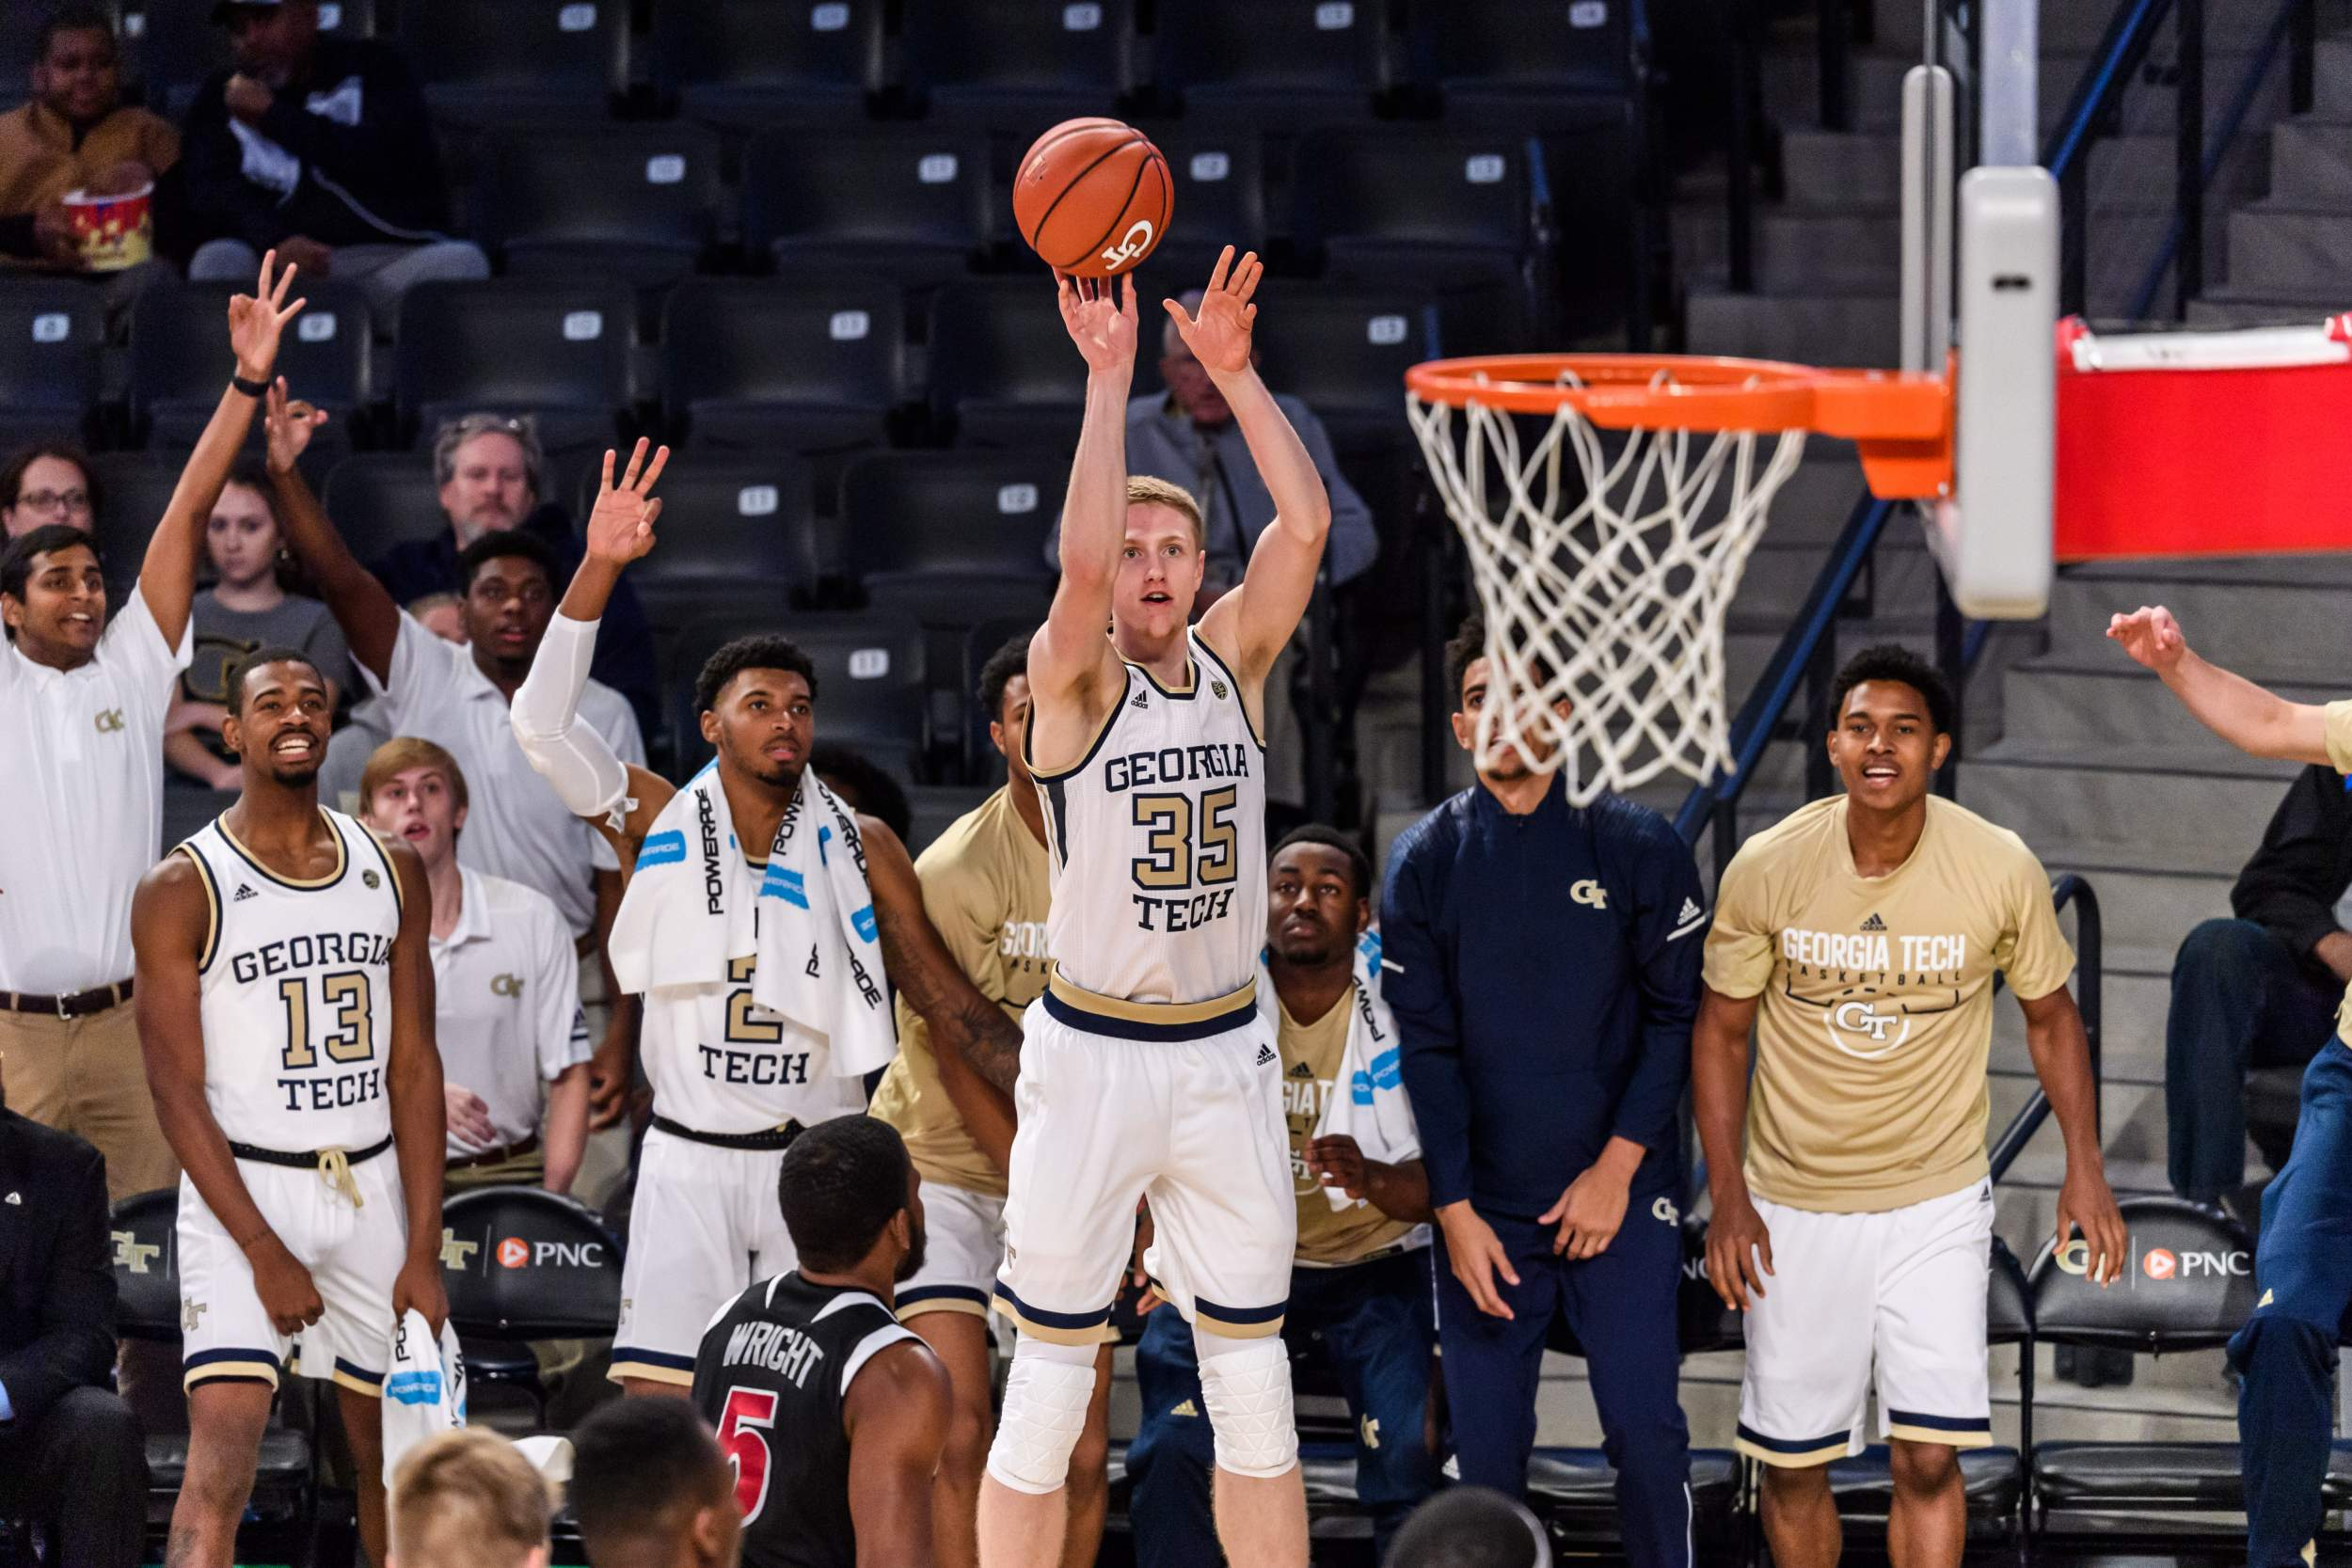 jackets rout florida tech in exhibition, 87-36 – men's basketball